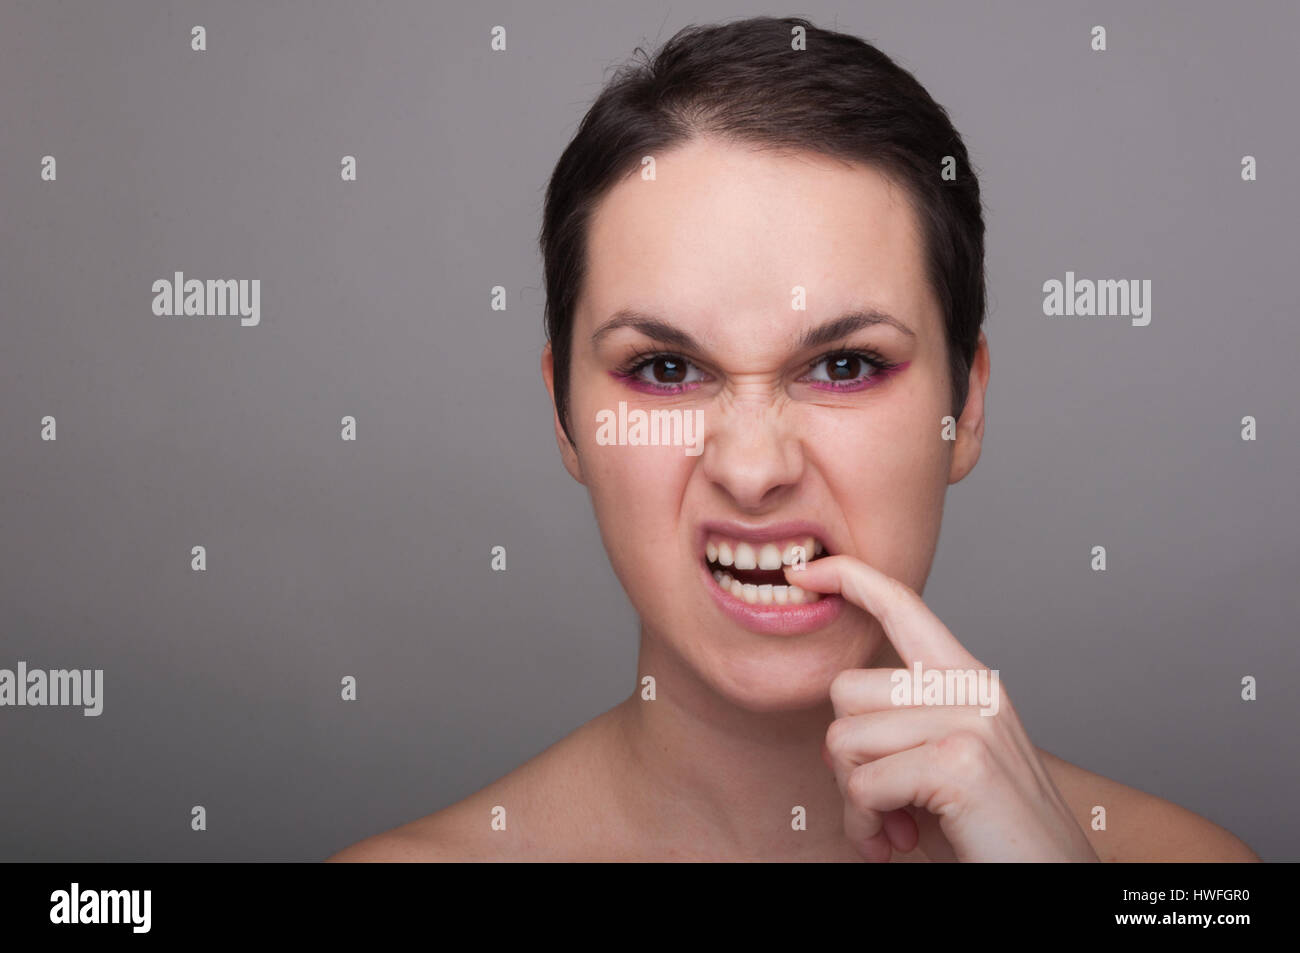 Angry or furious woman frowning and biting her finger on grey background with advertising area - Stock Image